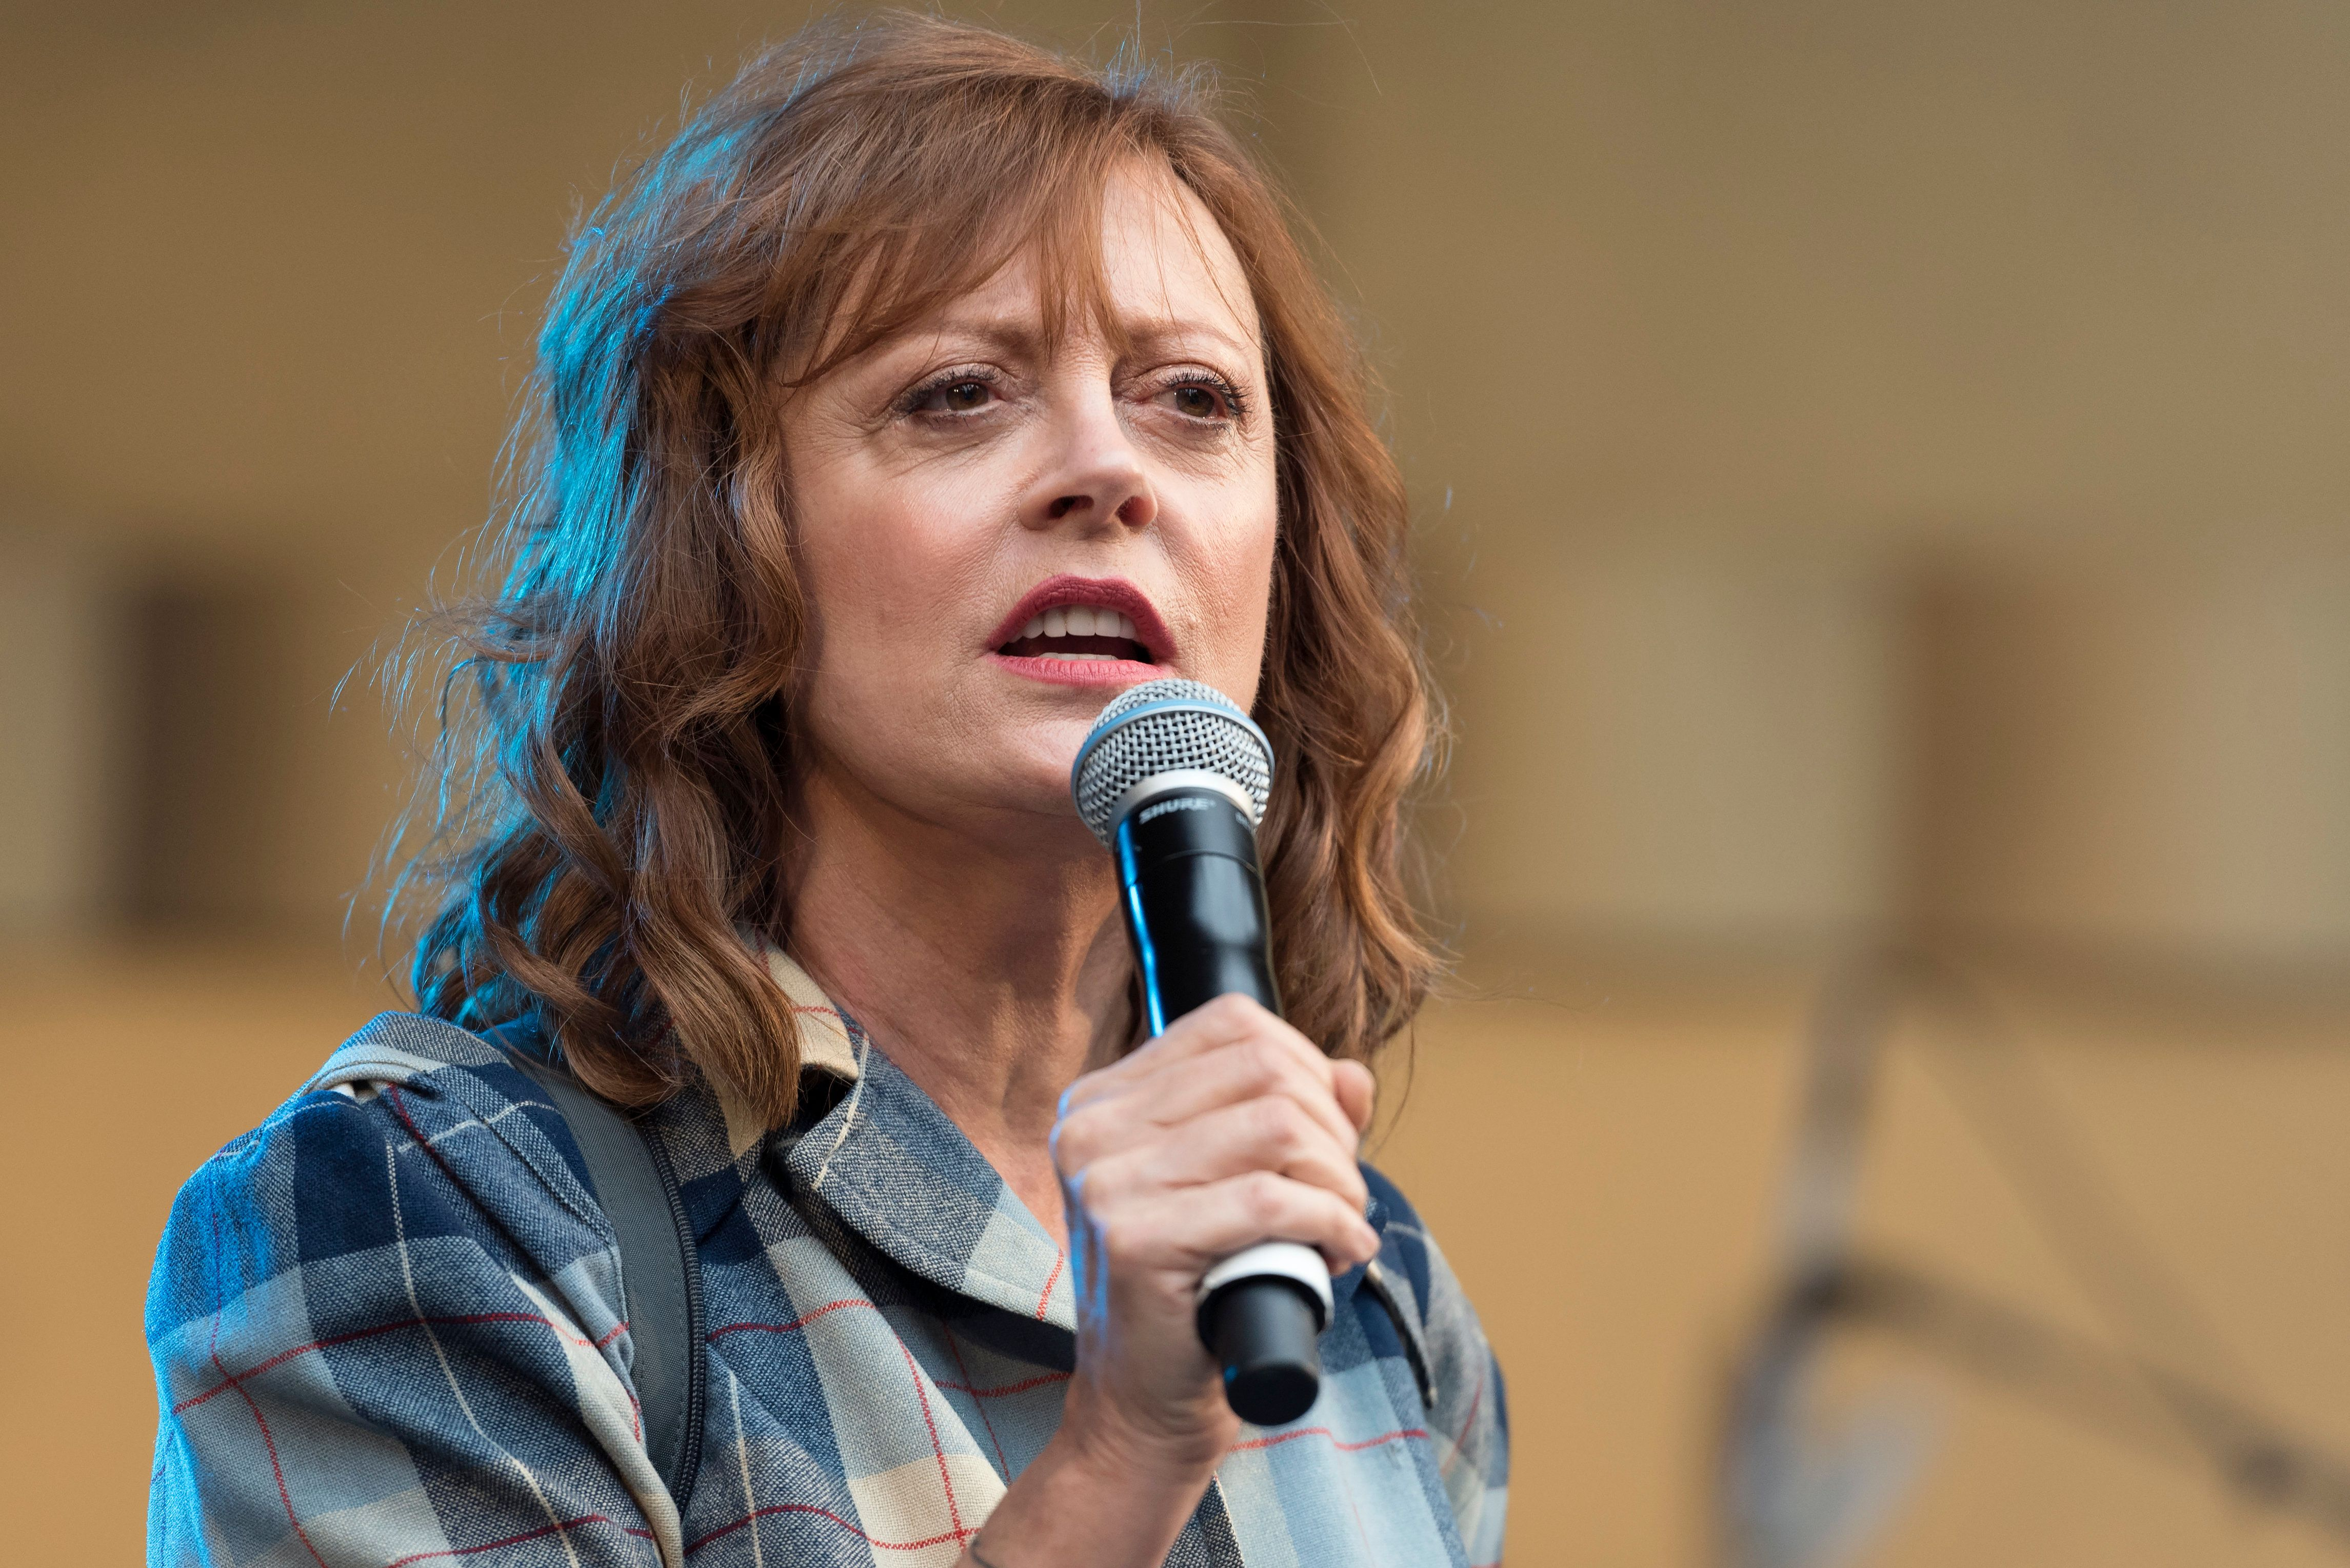 Actress and activist, Susan Sarandon, speaks during Climate Revolution Rally in Los Angeles, California. October 23, 2016. The rally is part of a series of Climate Revolution rallies held across the country to inform people about issues related to climate change and social justice.  (Photo by Ronen Tivony/NurPhoto via Getty Images)